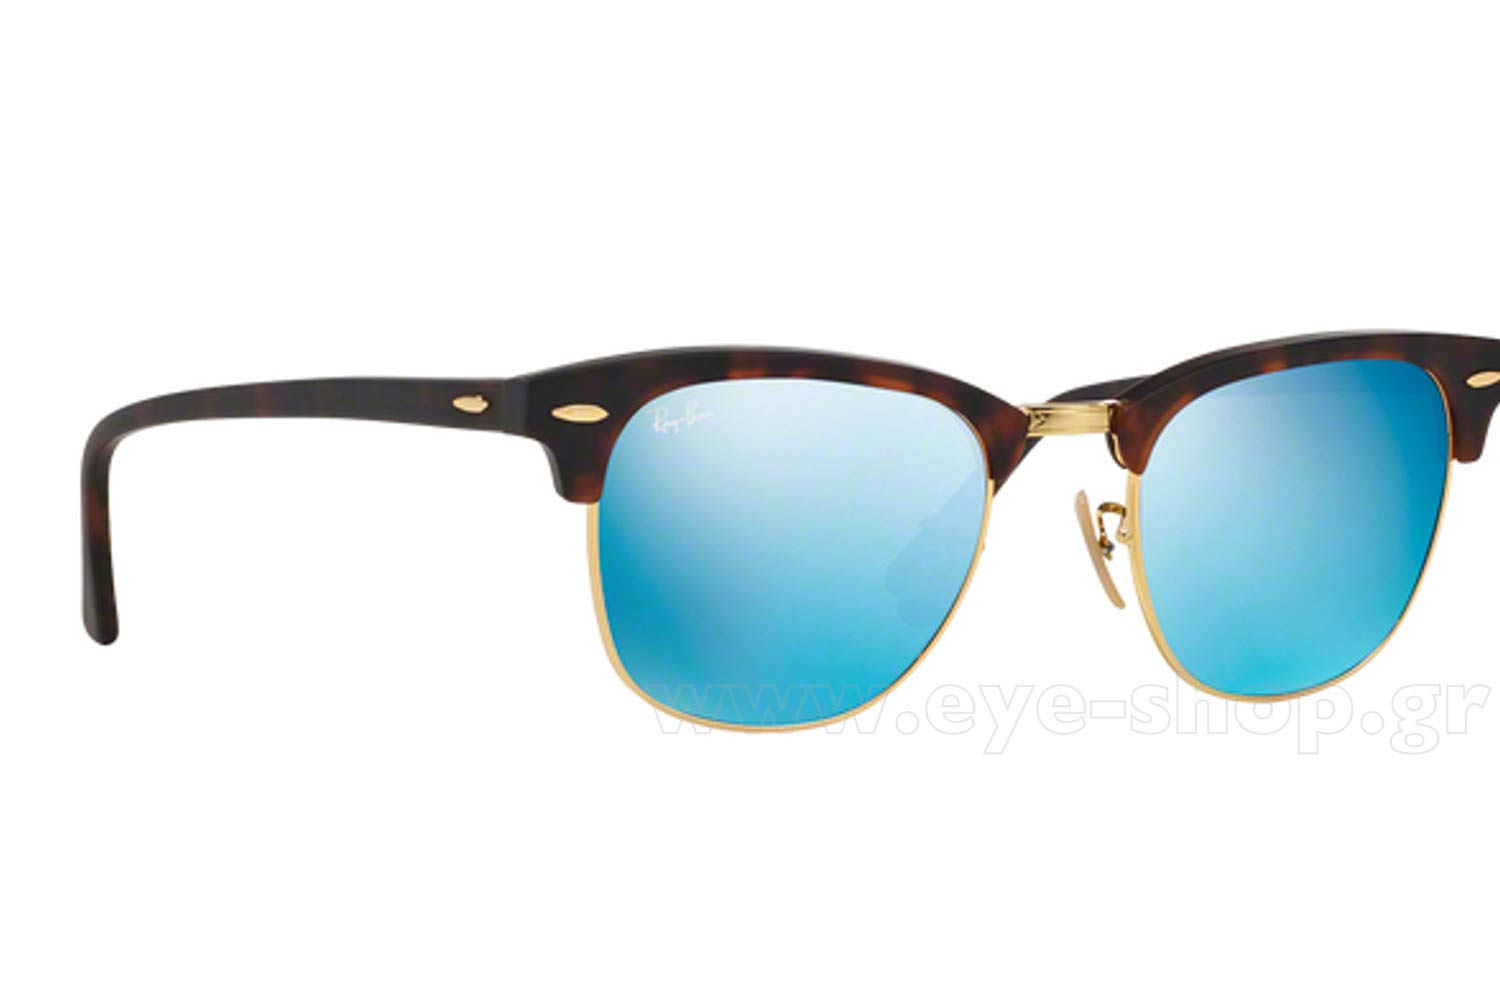 598a4b16bf laura-narges-wearing-sunglasses-rayban-3016-clubmaster wearing ...